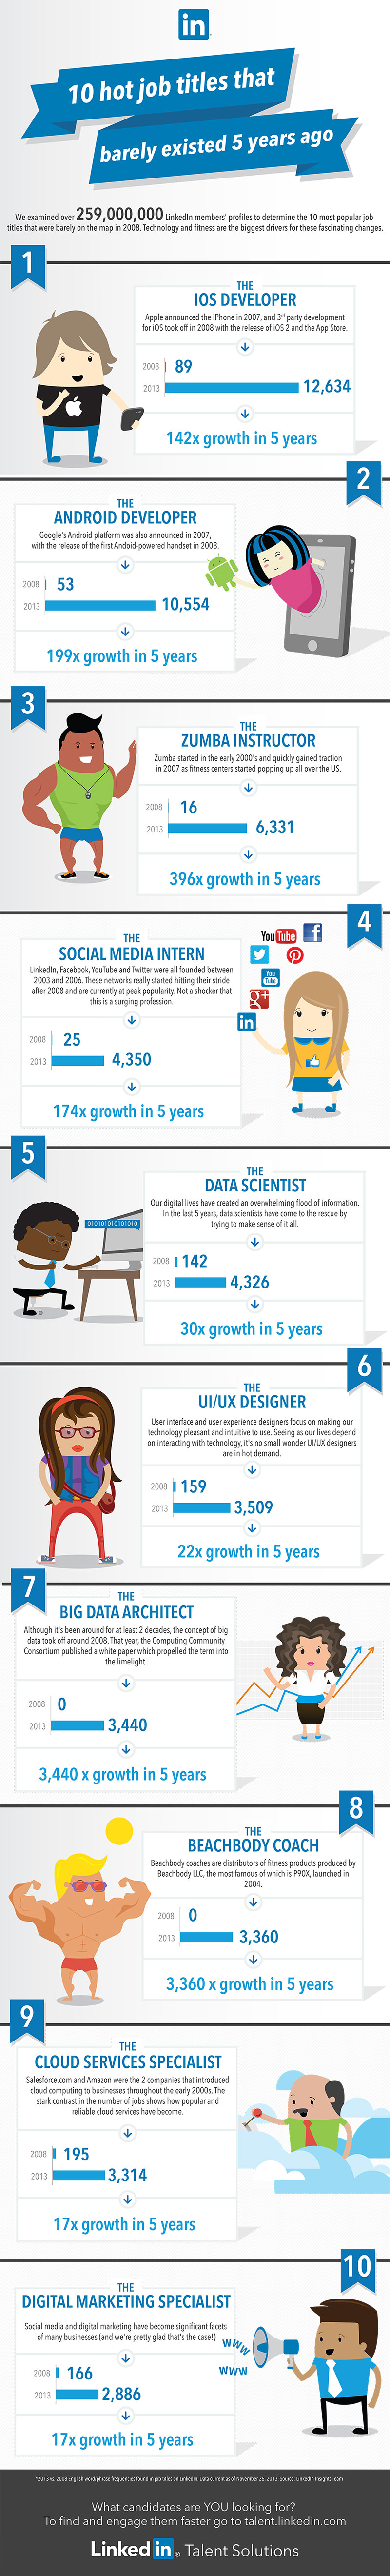 top-10-job-titles-that-didnt-exist-5-years-ago_fin1